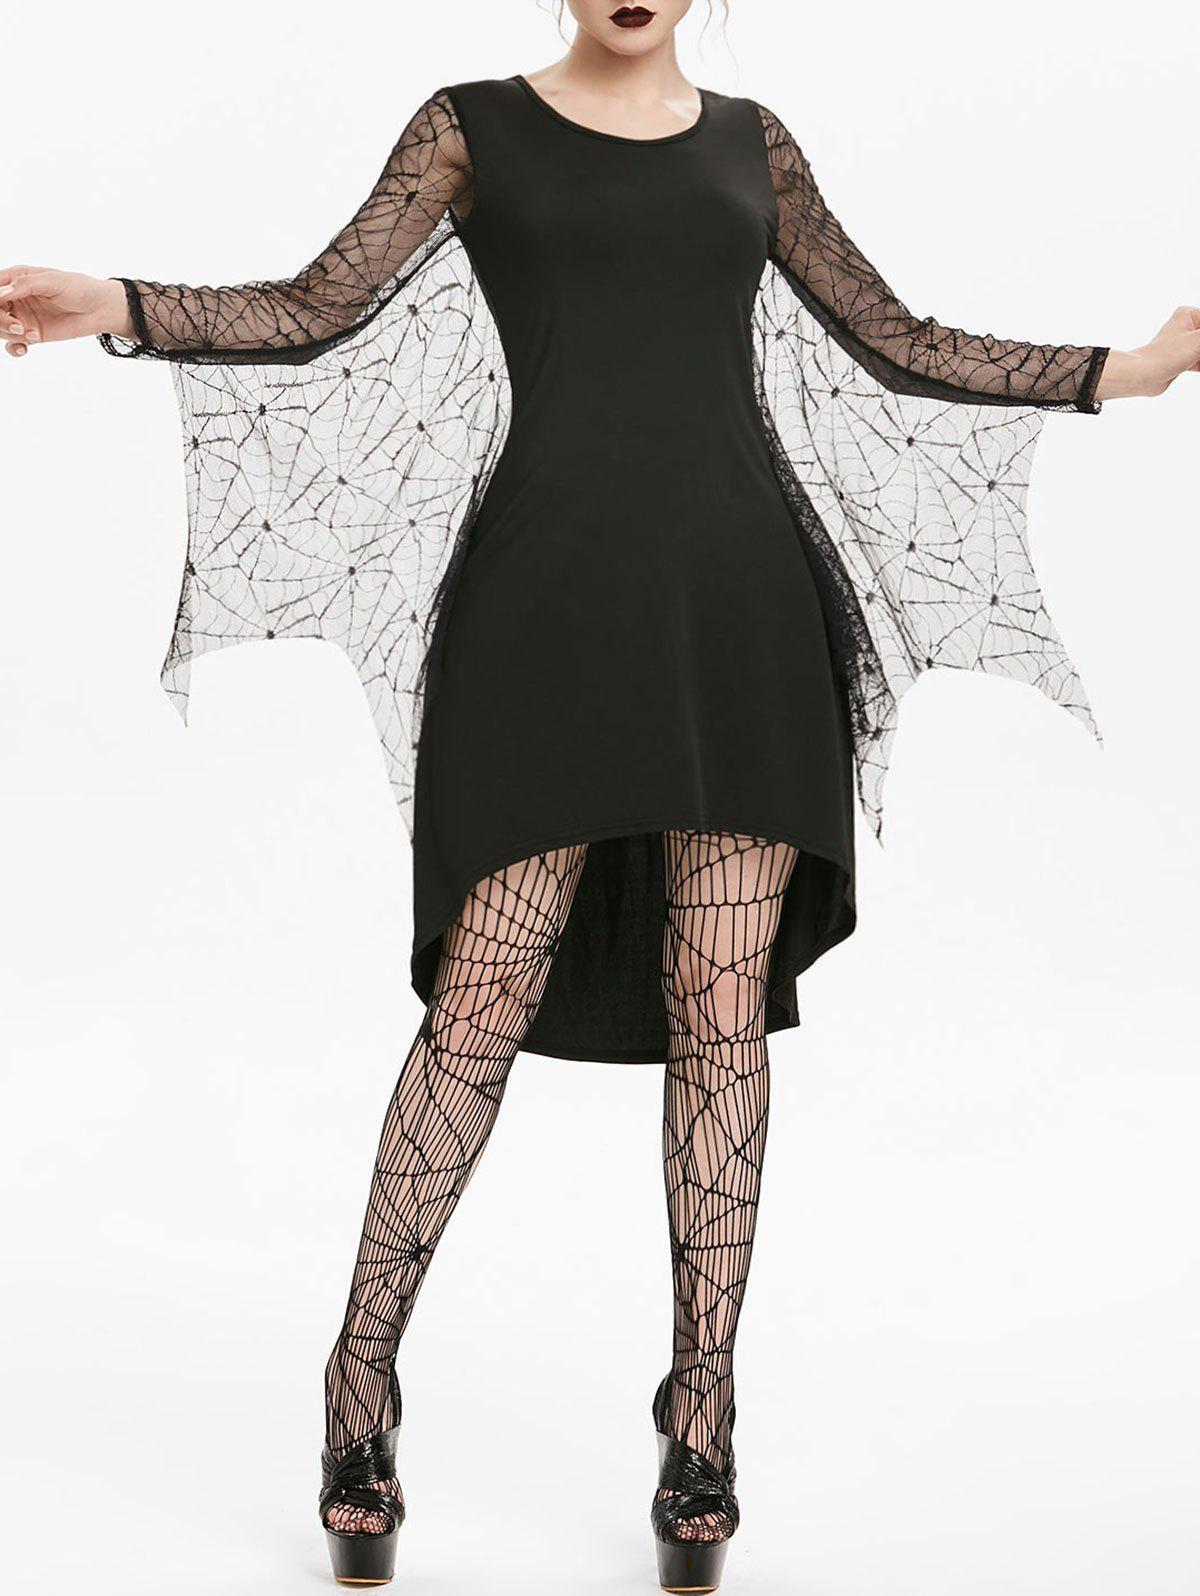 Fashion Asymmetric Spider Web Lace Insert High Low Gothic Dress